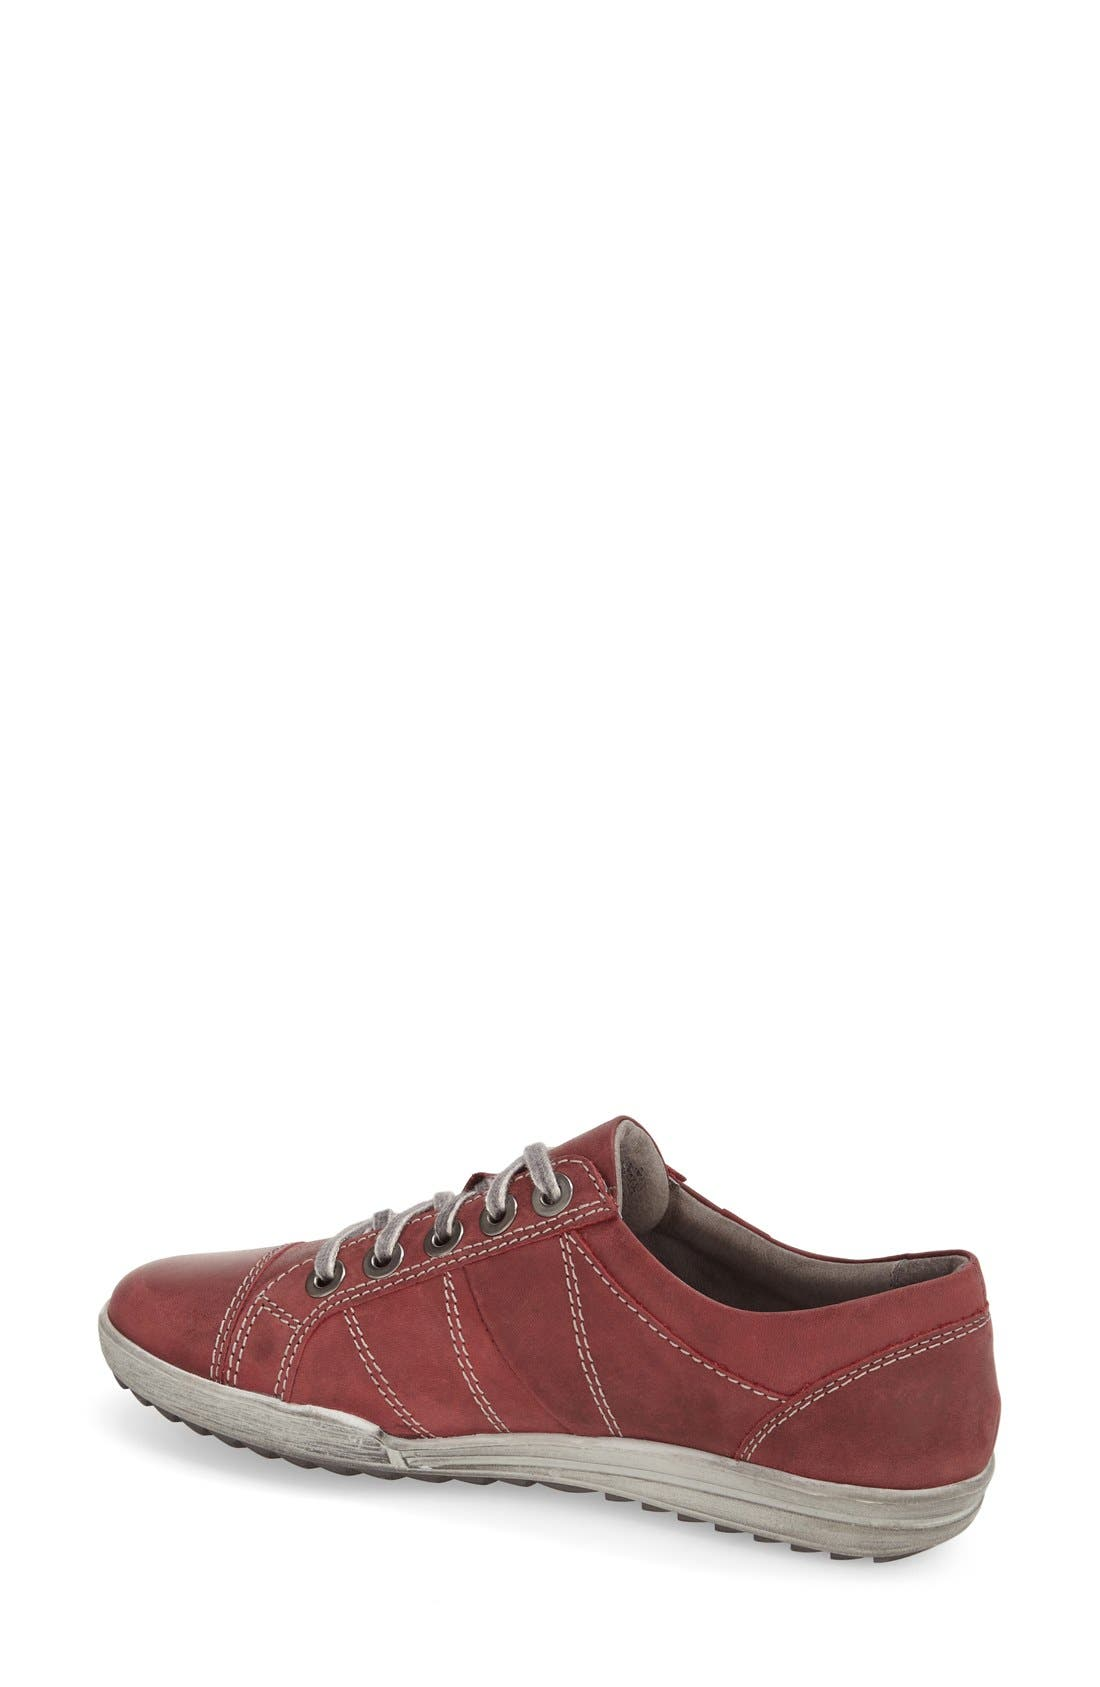 'Dany 05' Leather Sneaker,                             Alternate thumbnail 52, color,